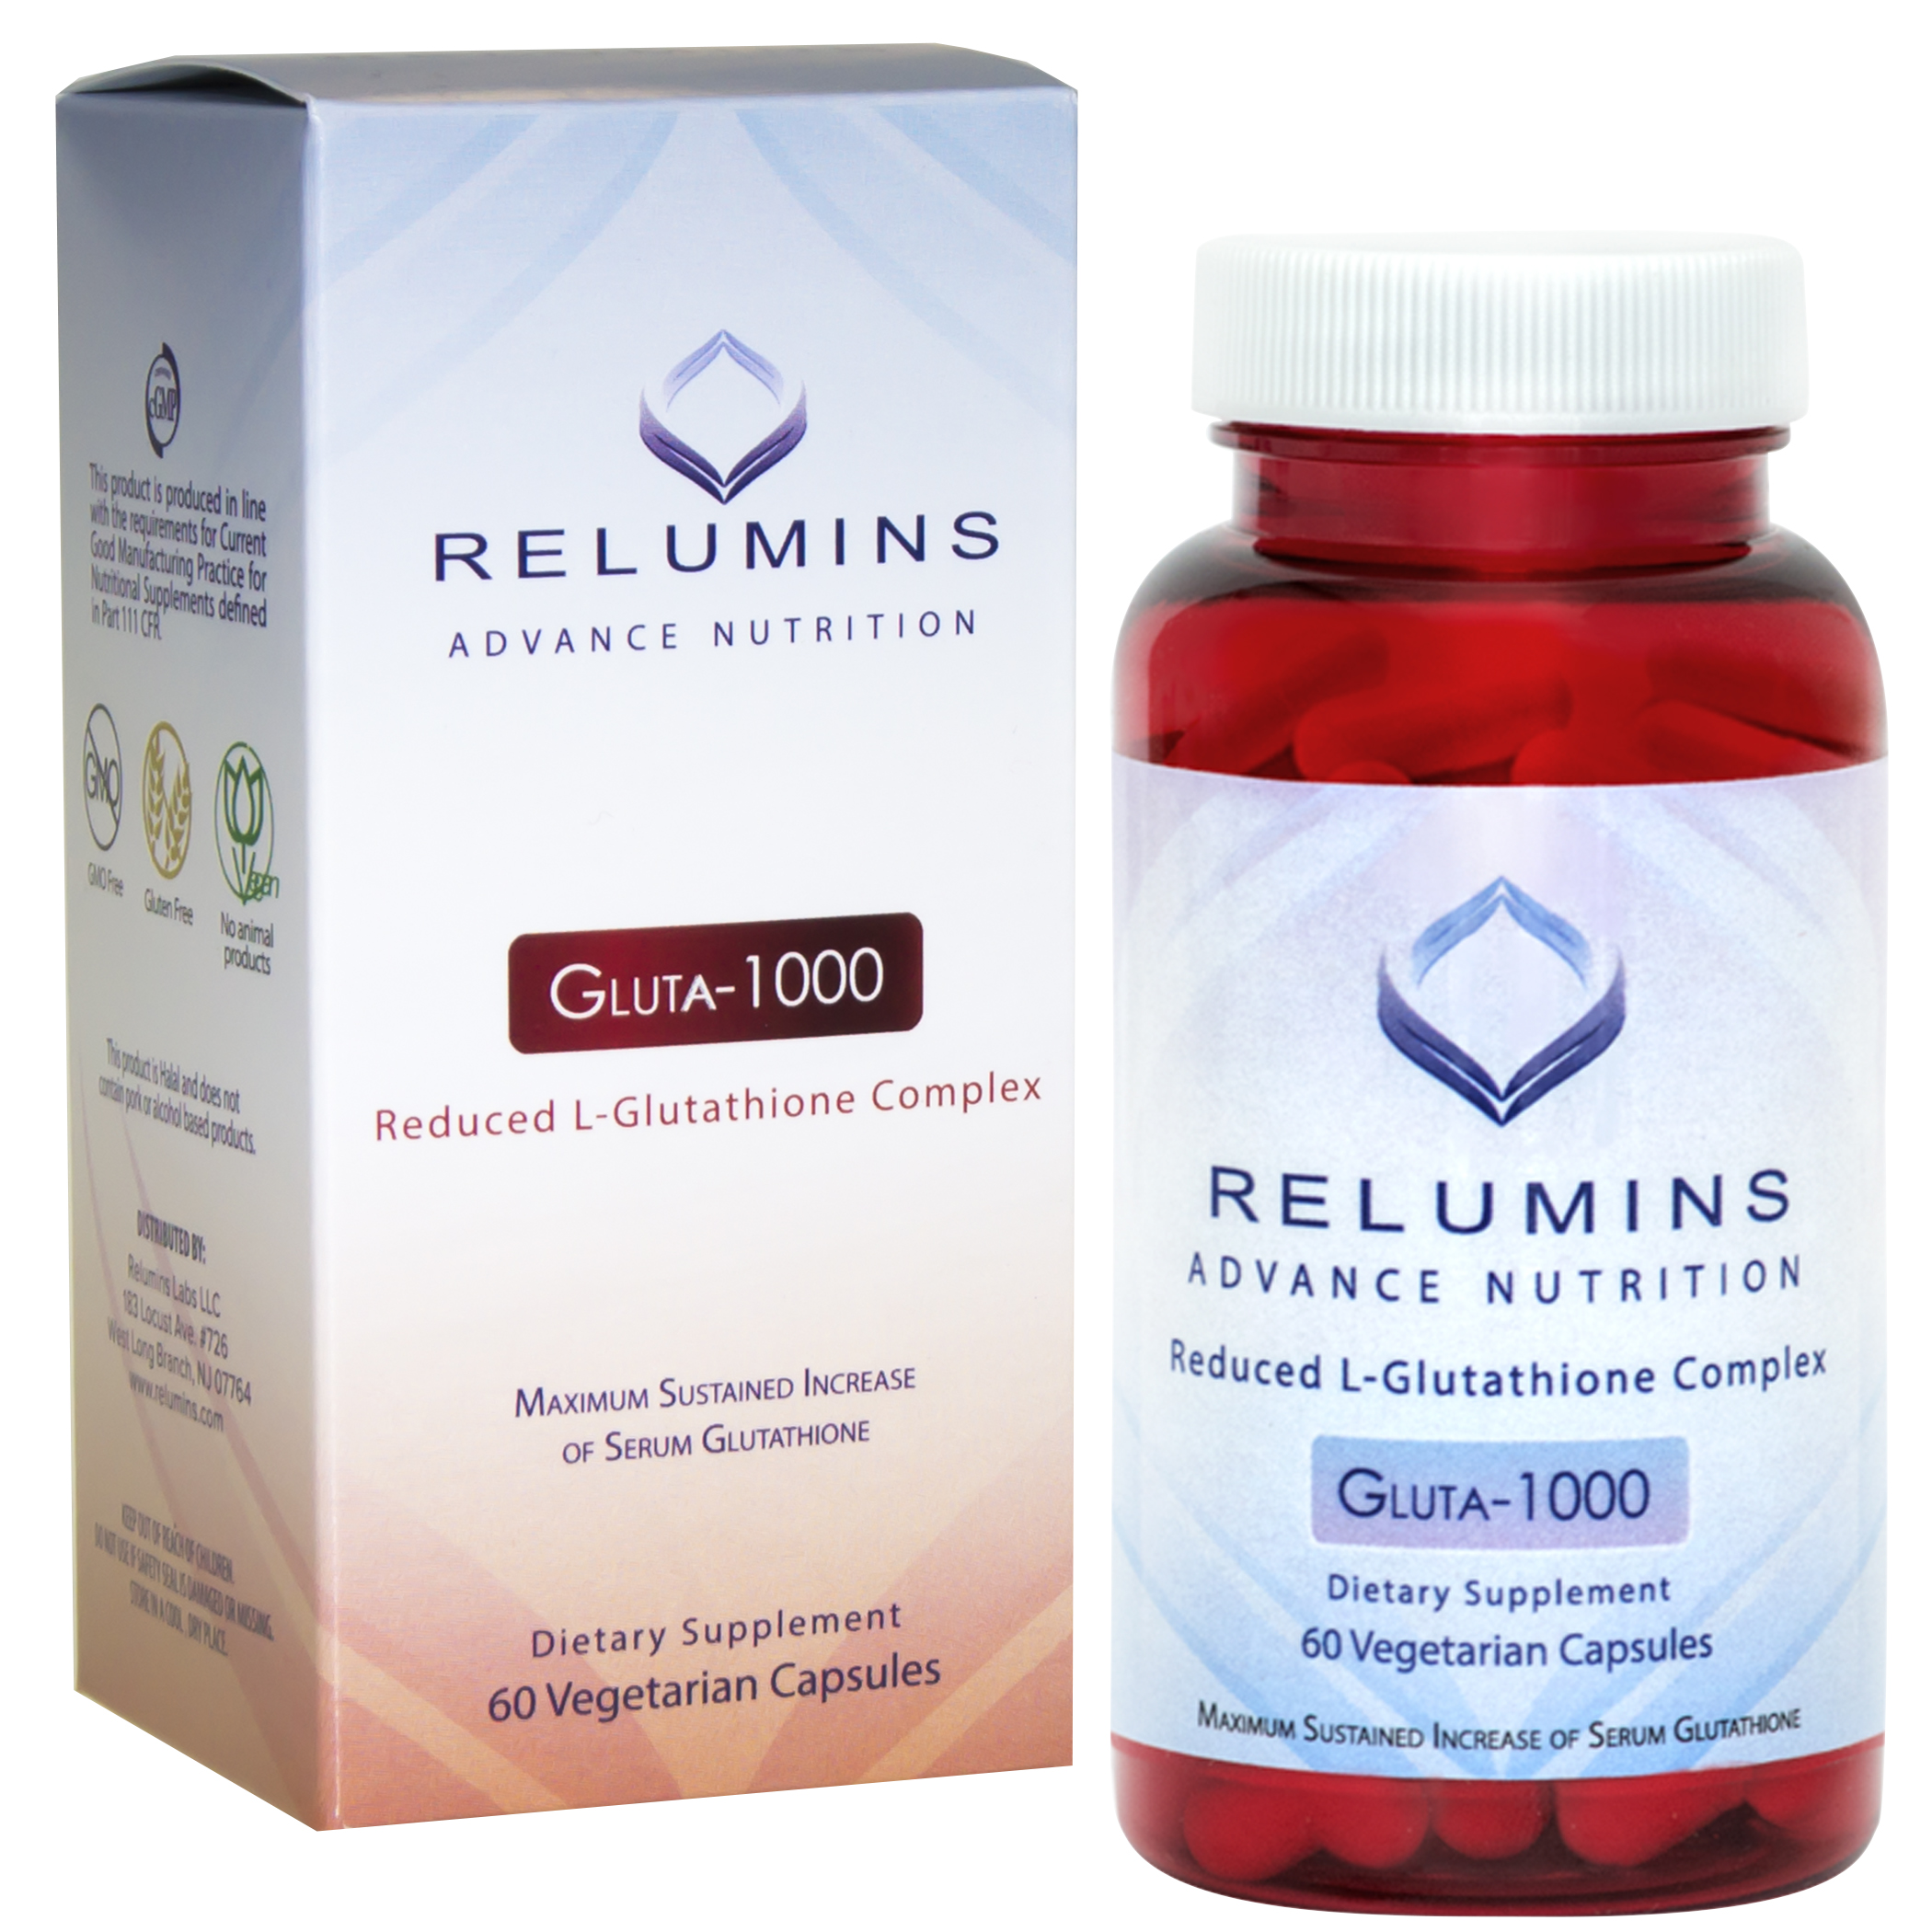 Authentic Relumins Advance Nutrition Reduced L-Glutathione